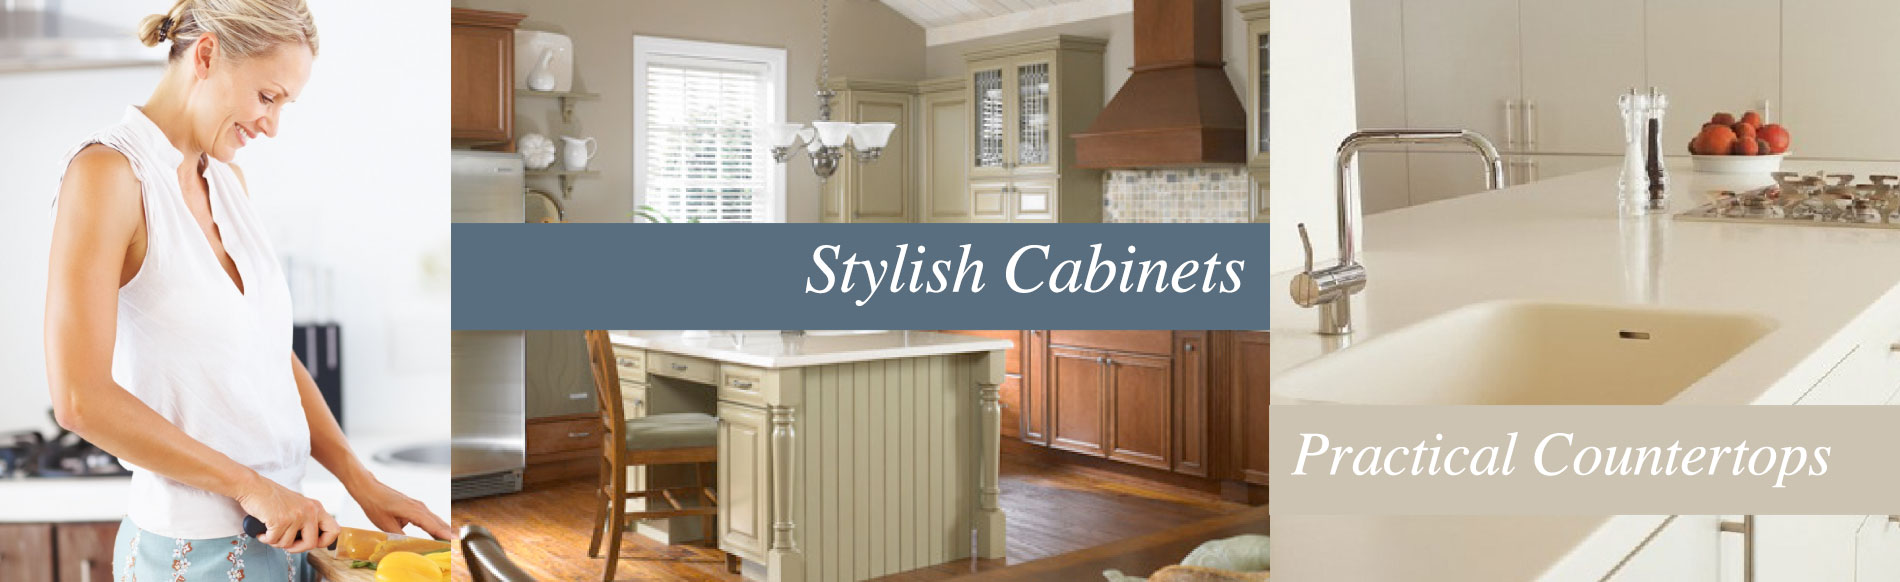 Custom Cabinets Counter Tops Roswell Nm Bush Woodworks Appliance Inc Bush Woodworks Appliance